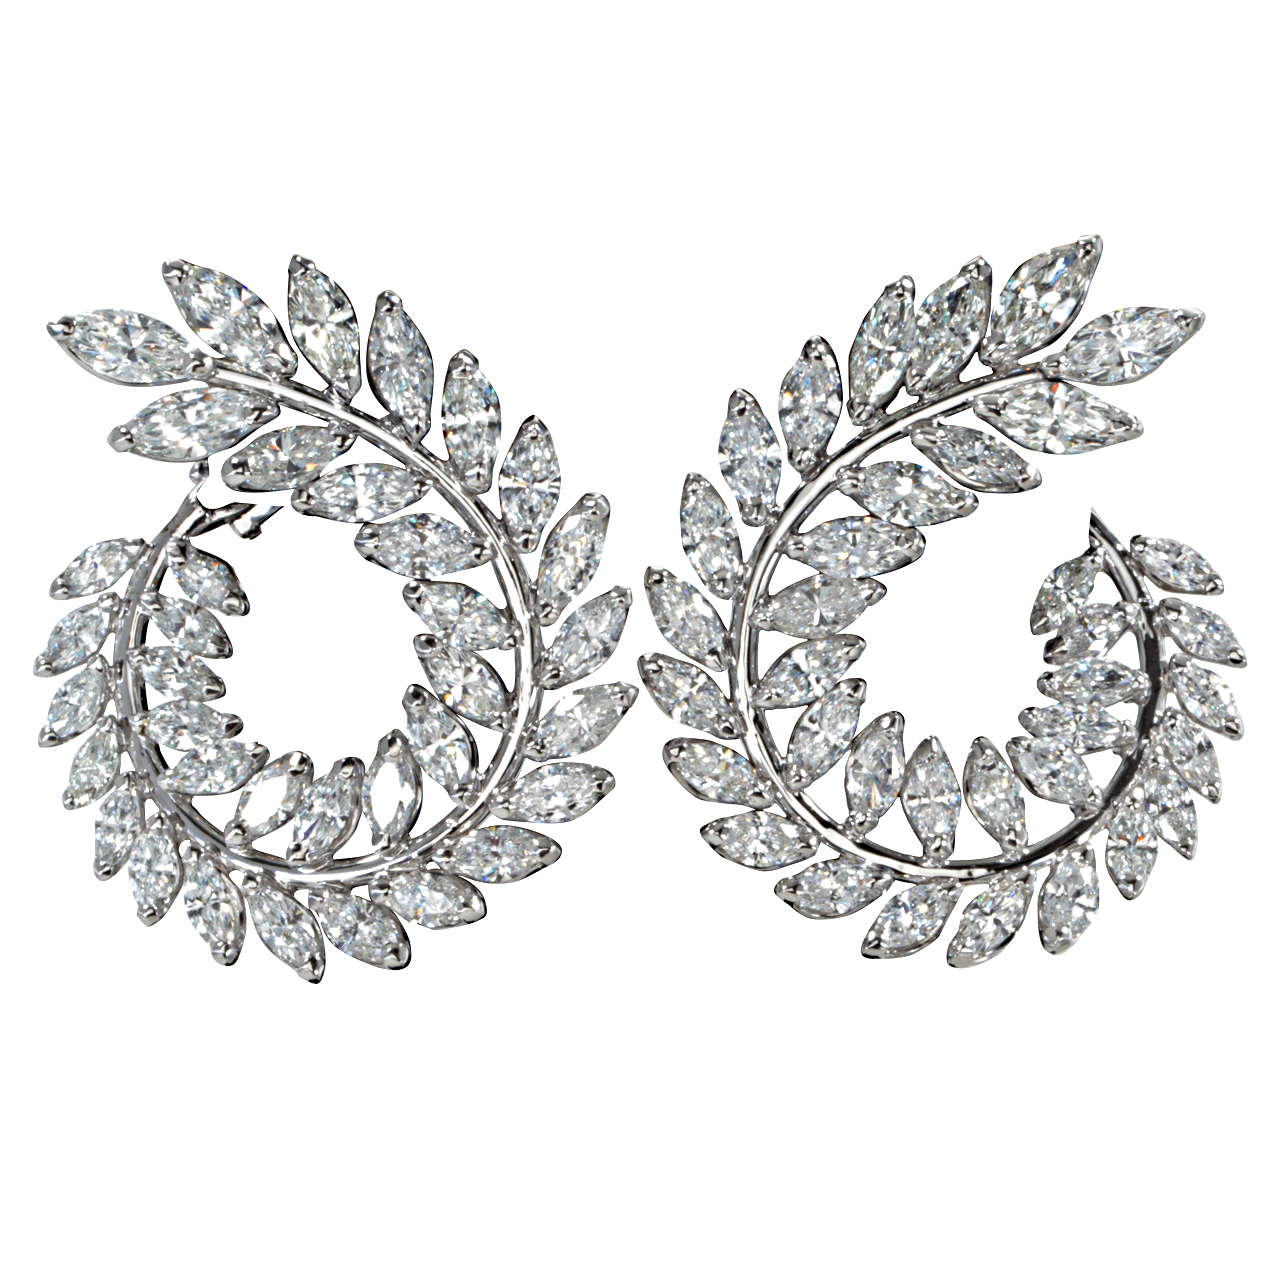 Stunning Marquise Diamond Gold Wreath Style Swirl Earrings